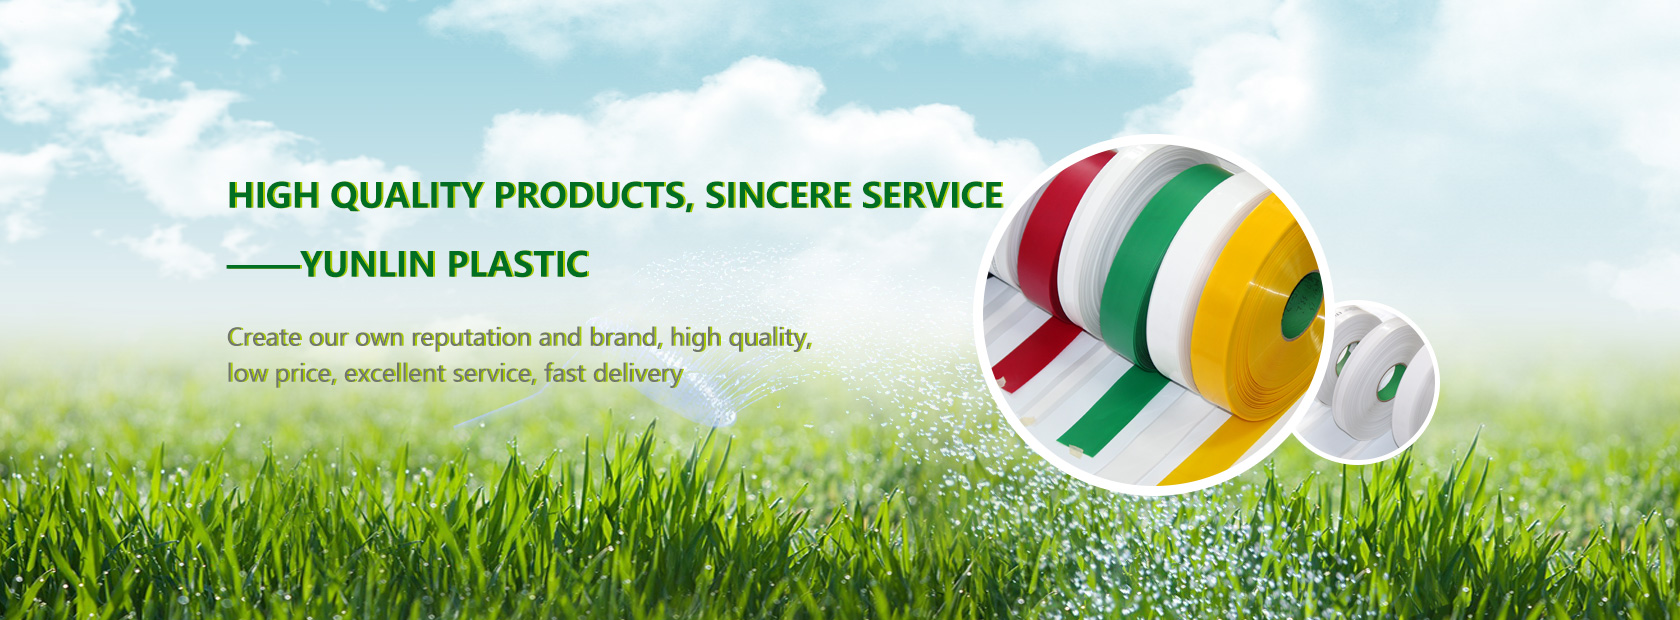 High quality products, sincere service - Yunlin plastic